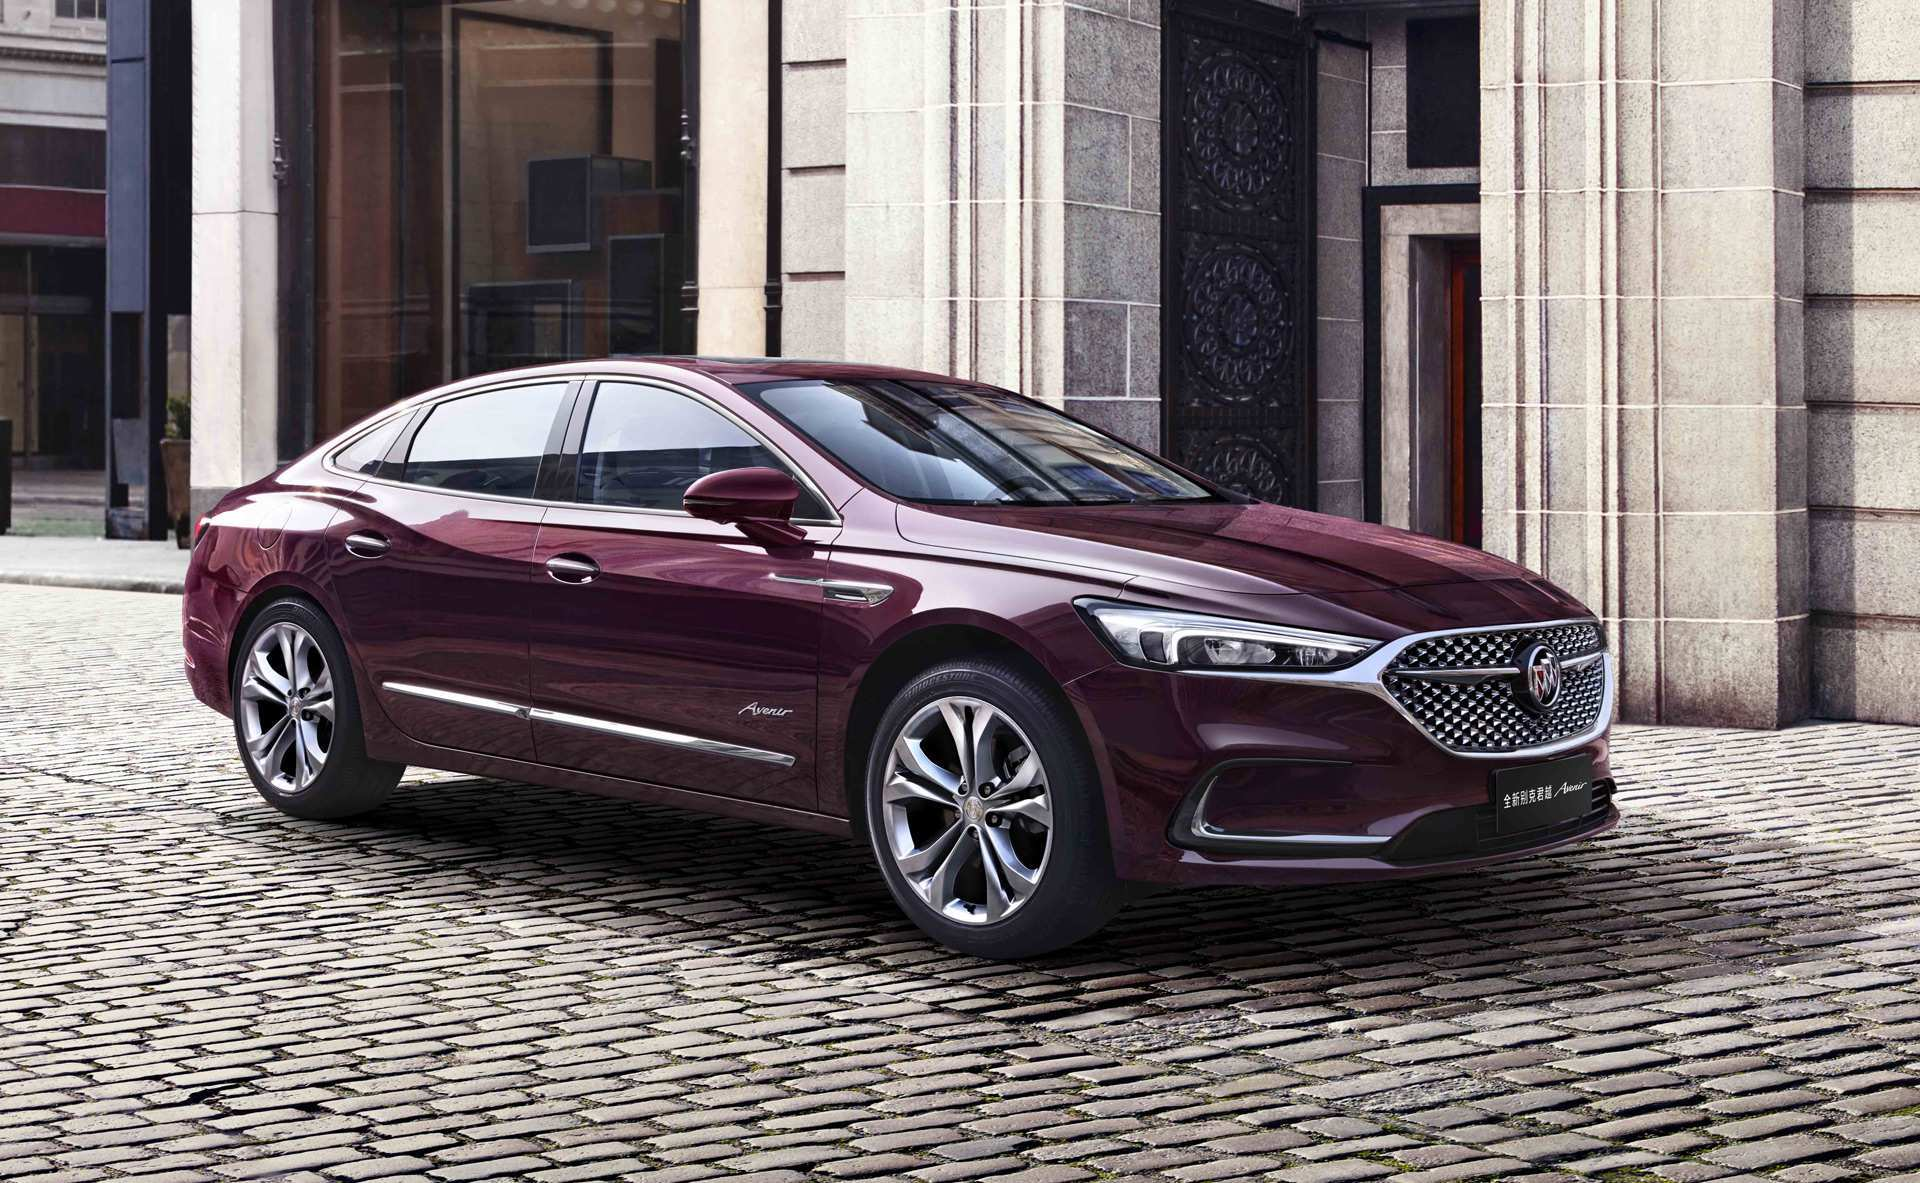 80 All New When Will The 2020 Buick Lacrosse Be Released Exterior and Interior by When Will The 2020 Buick Lacrosse Be Released